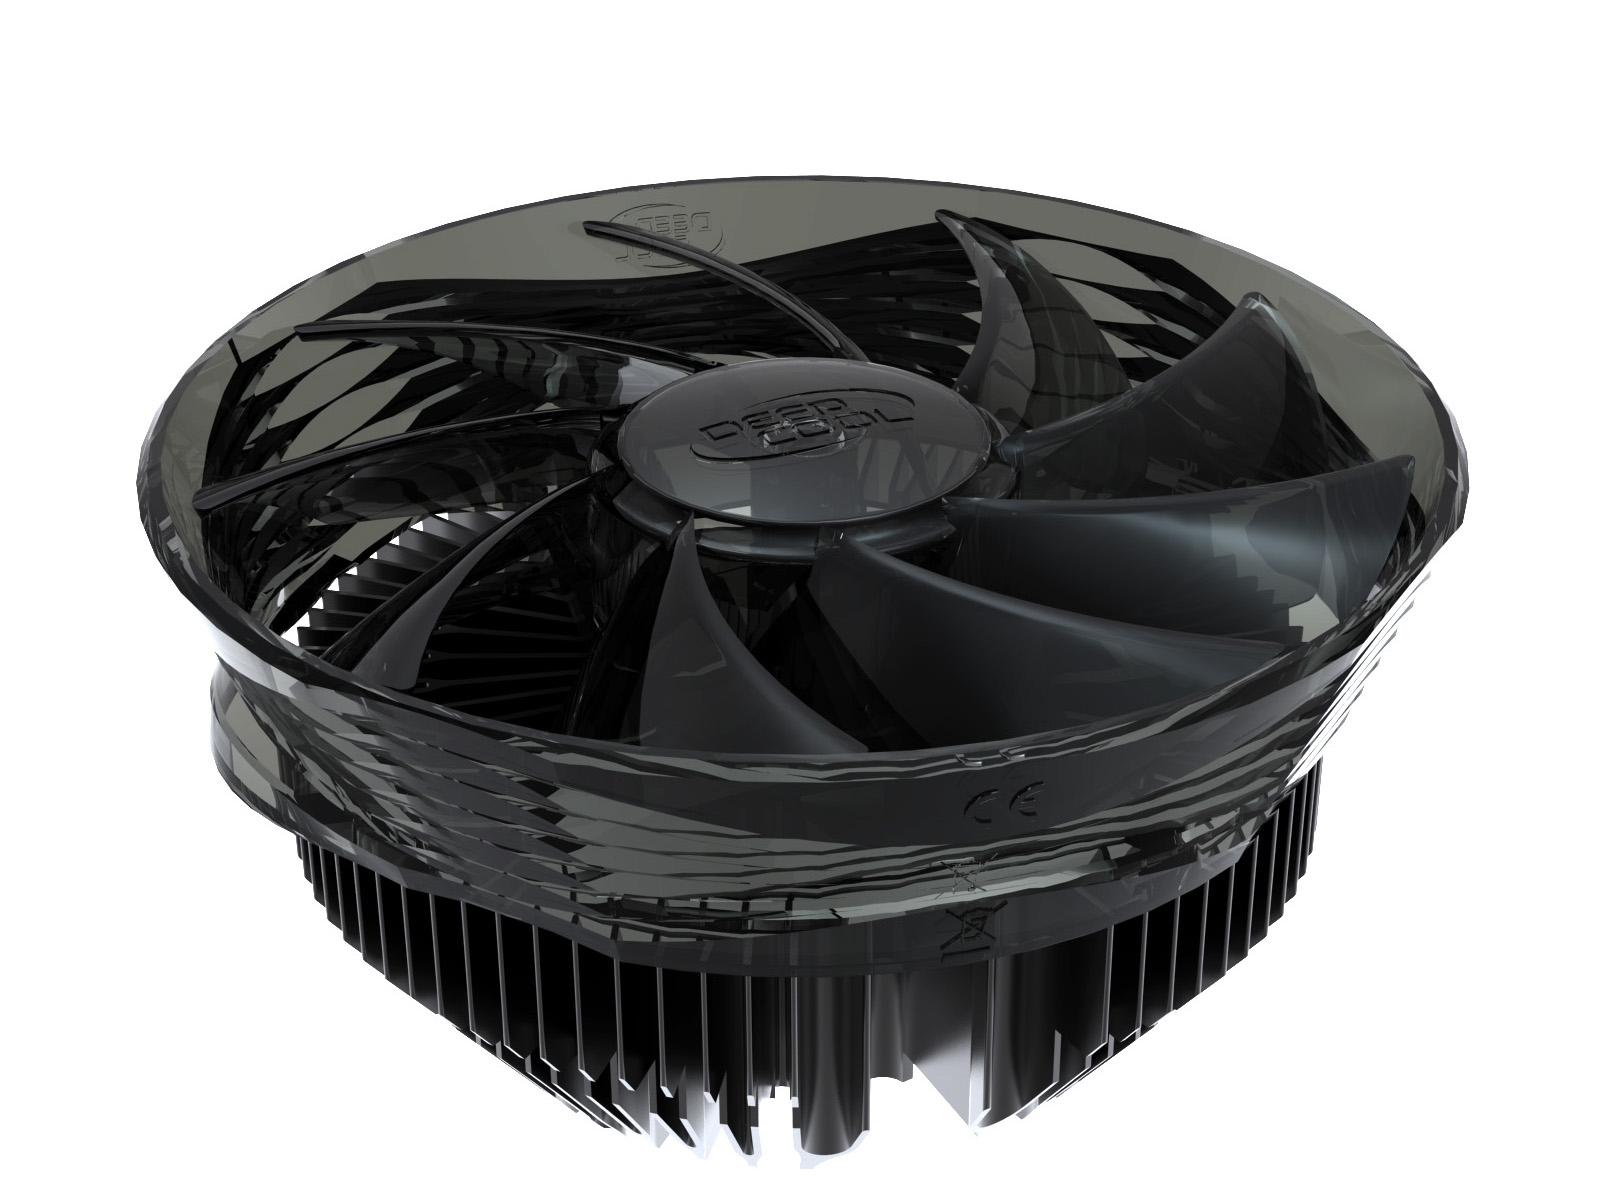 Deepcool Gamma Blade CPU Cooler (1155/1156/775, AM3/2+, 939) with Silent 120mm Fan